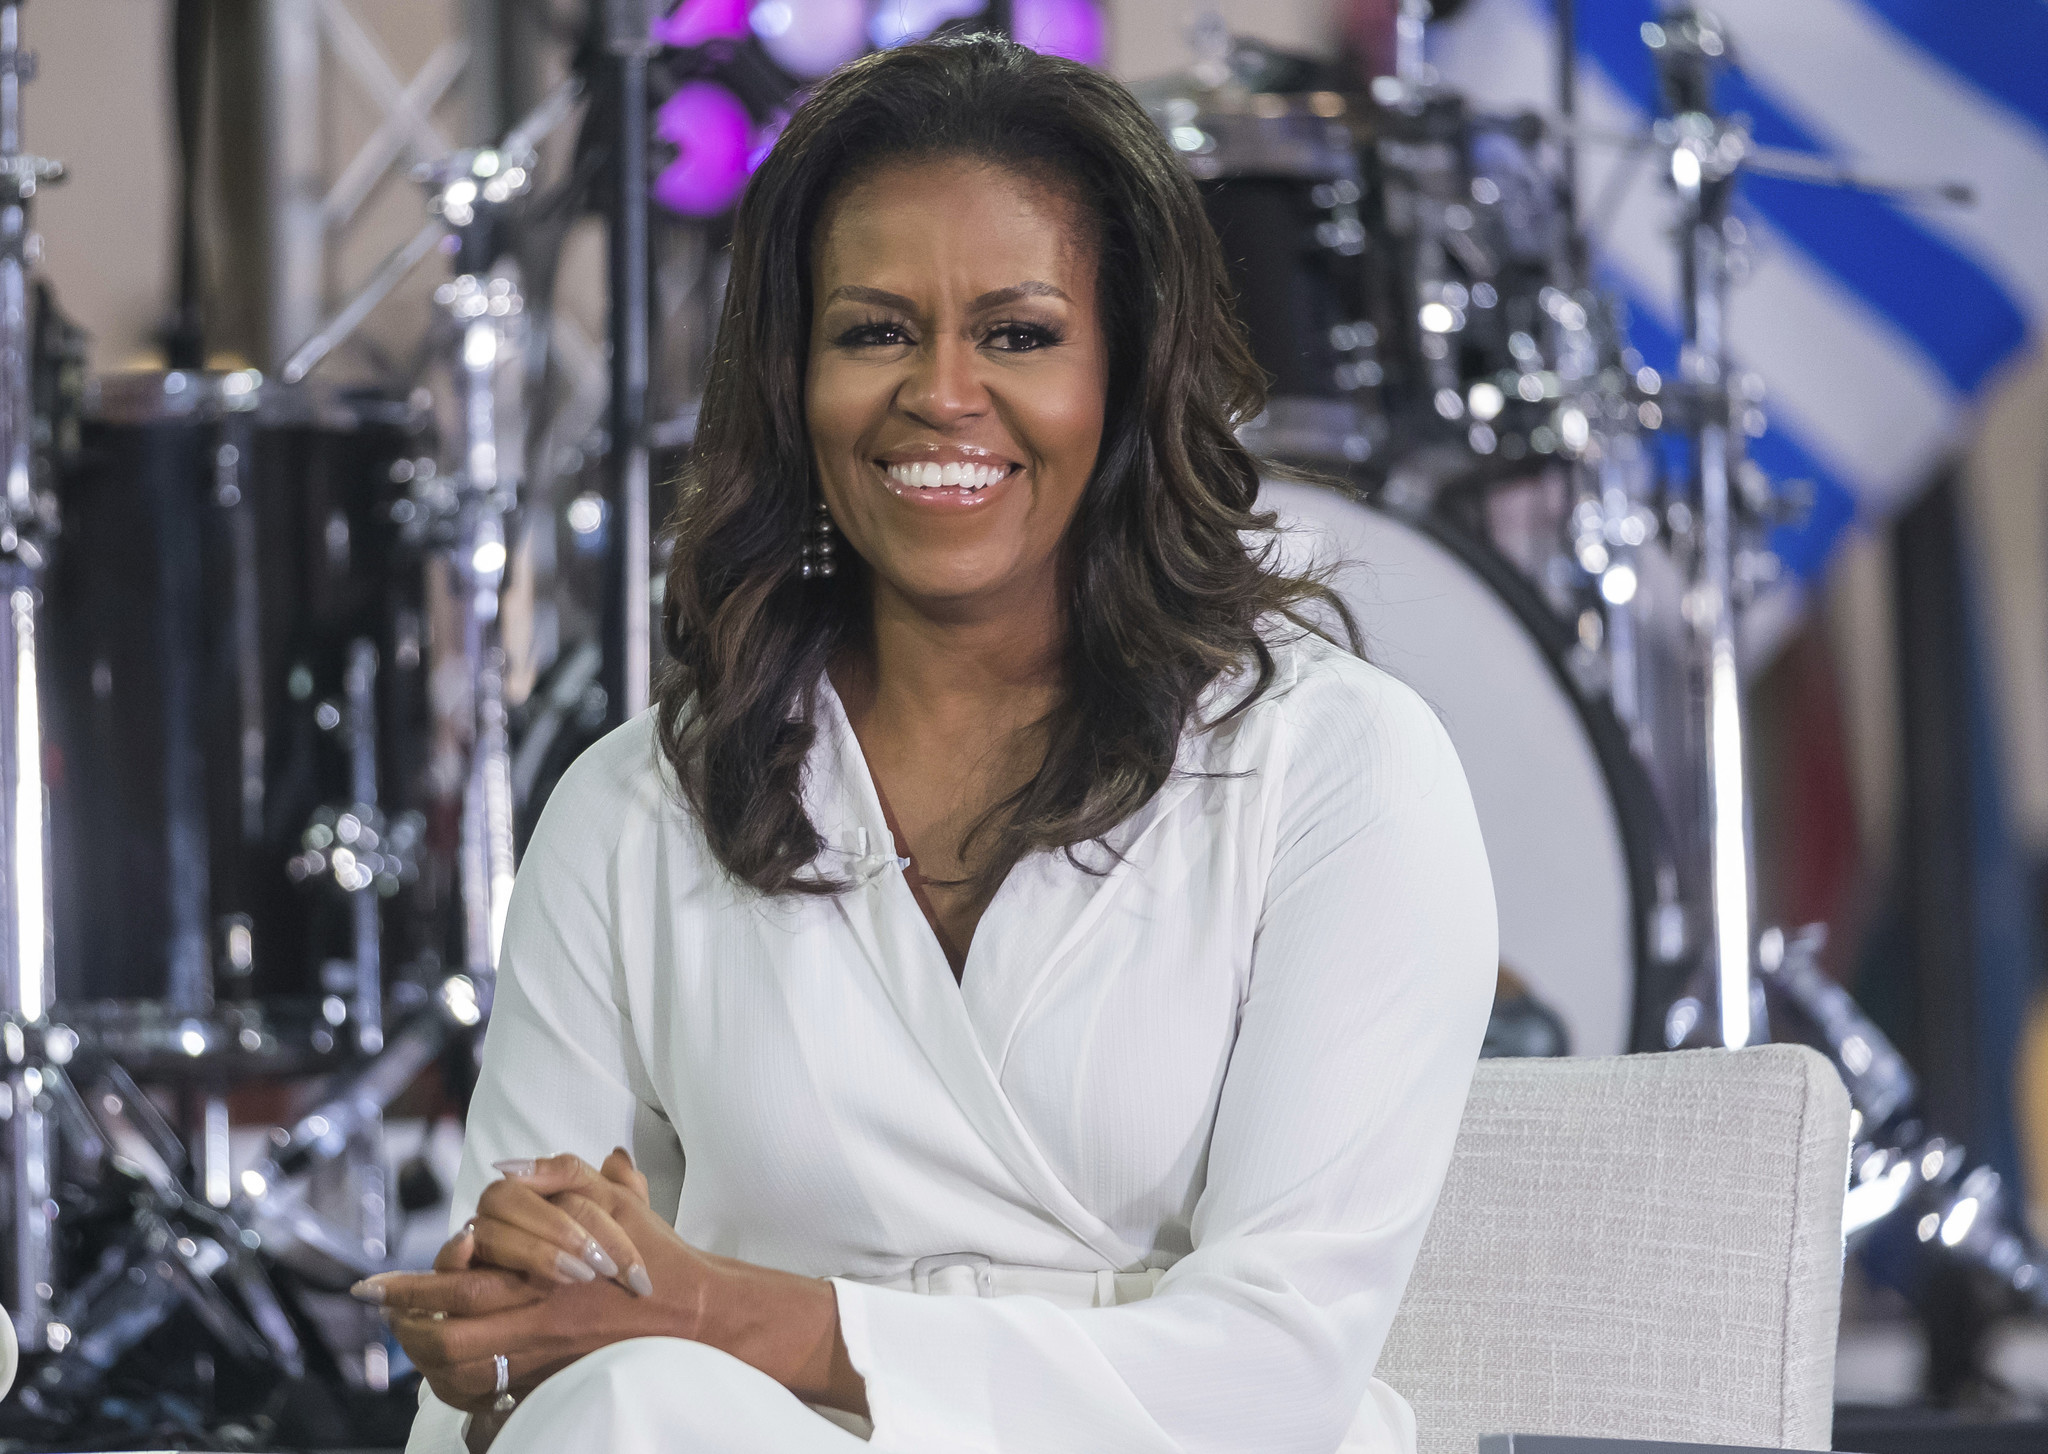 Michelle Obama among People magazine's 'People of the Year'